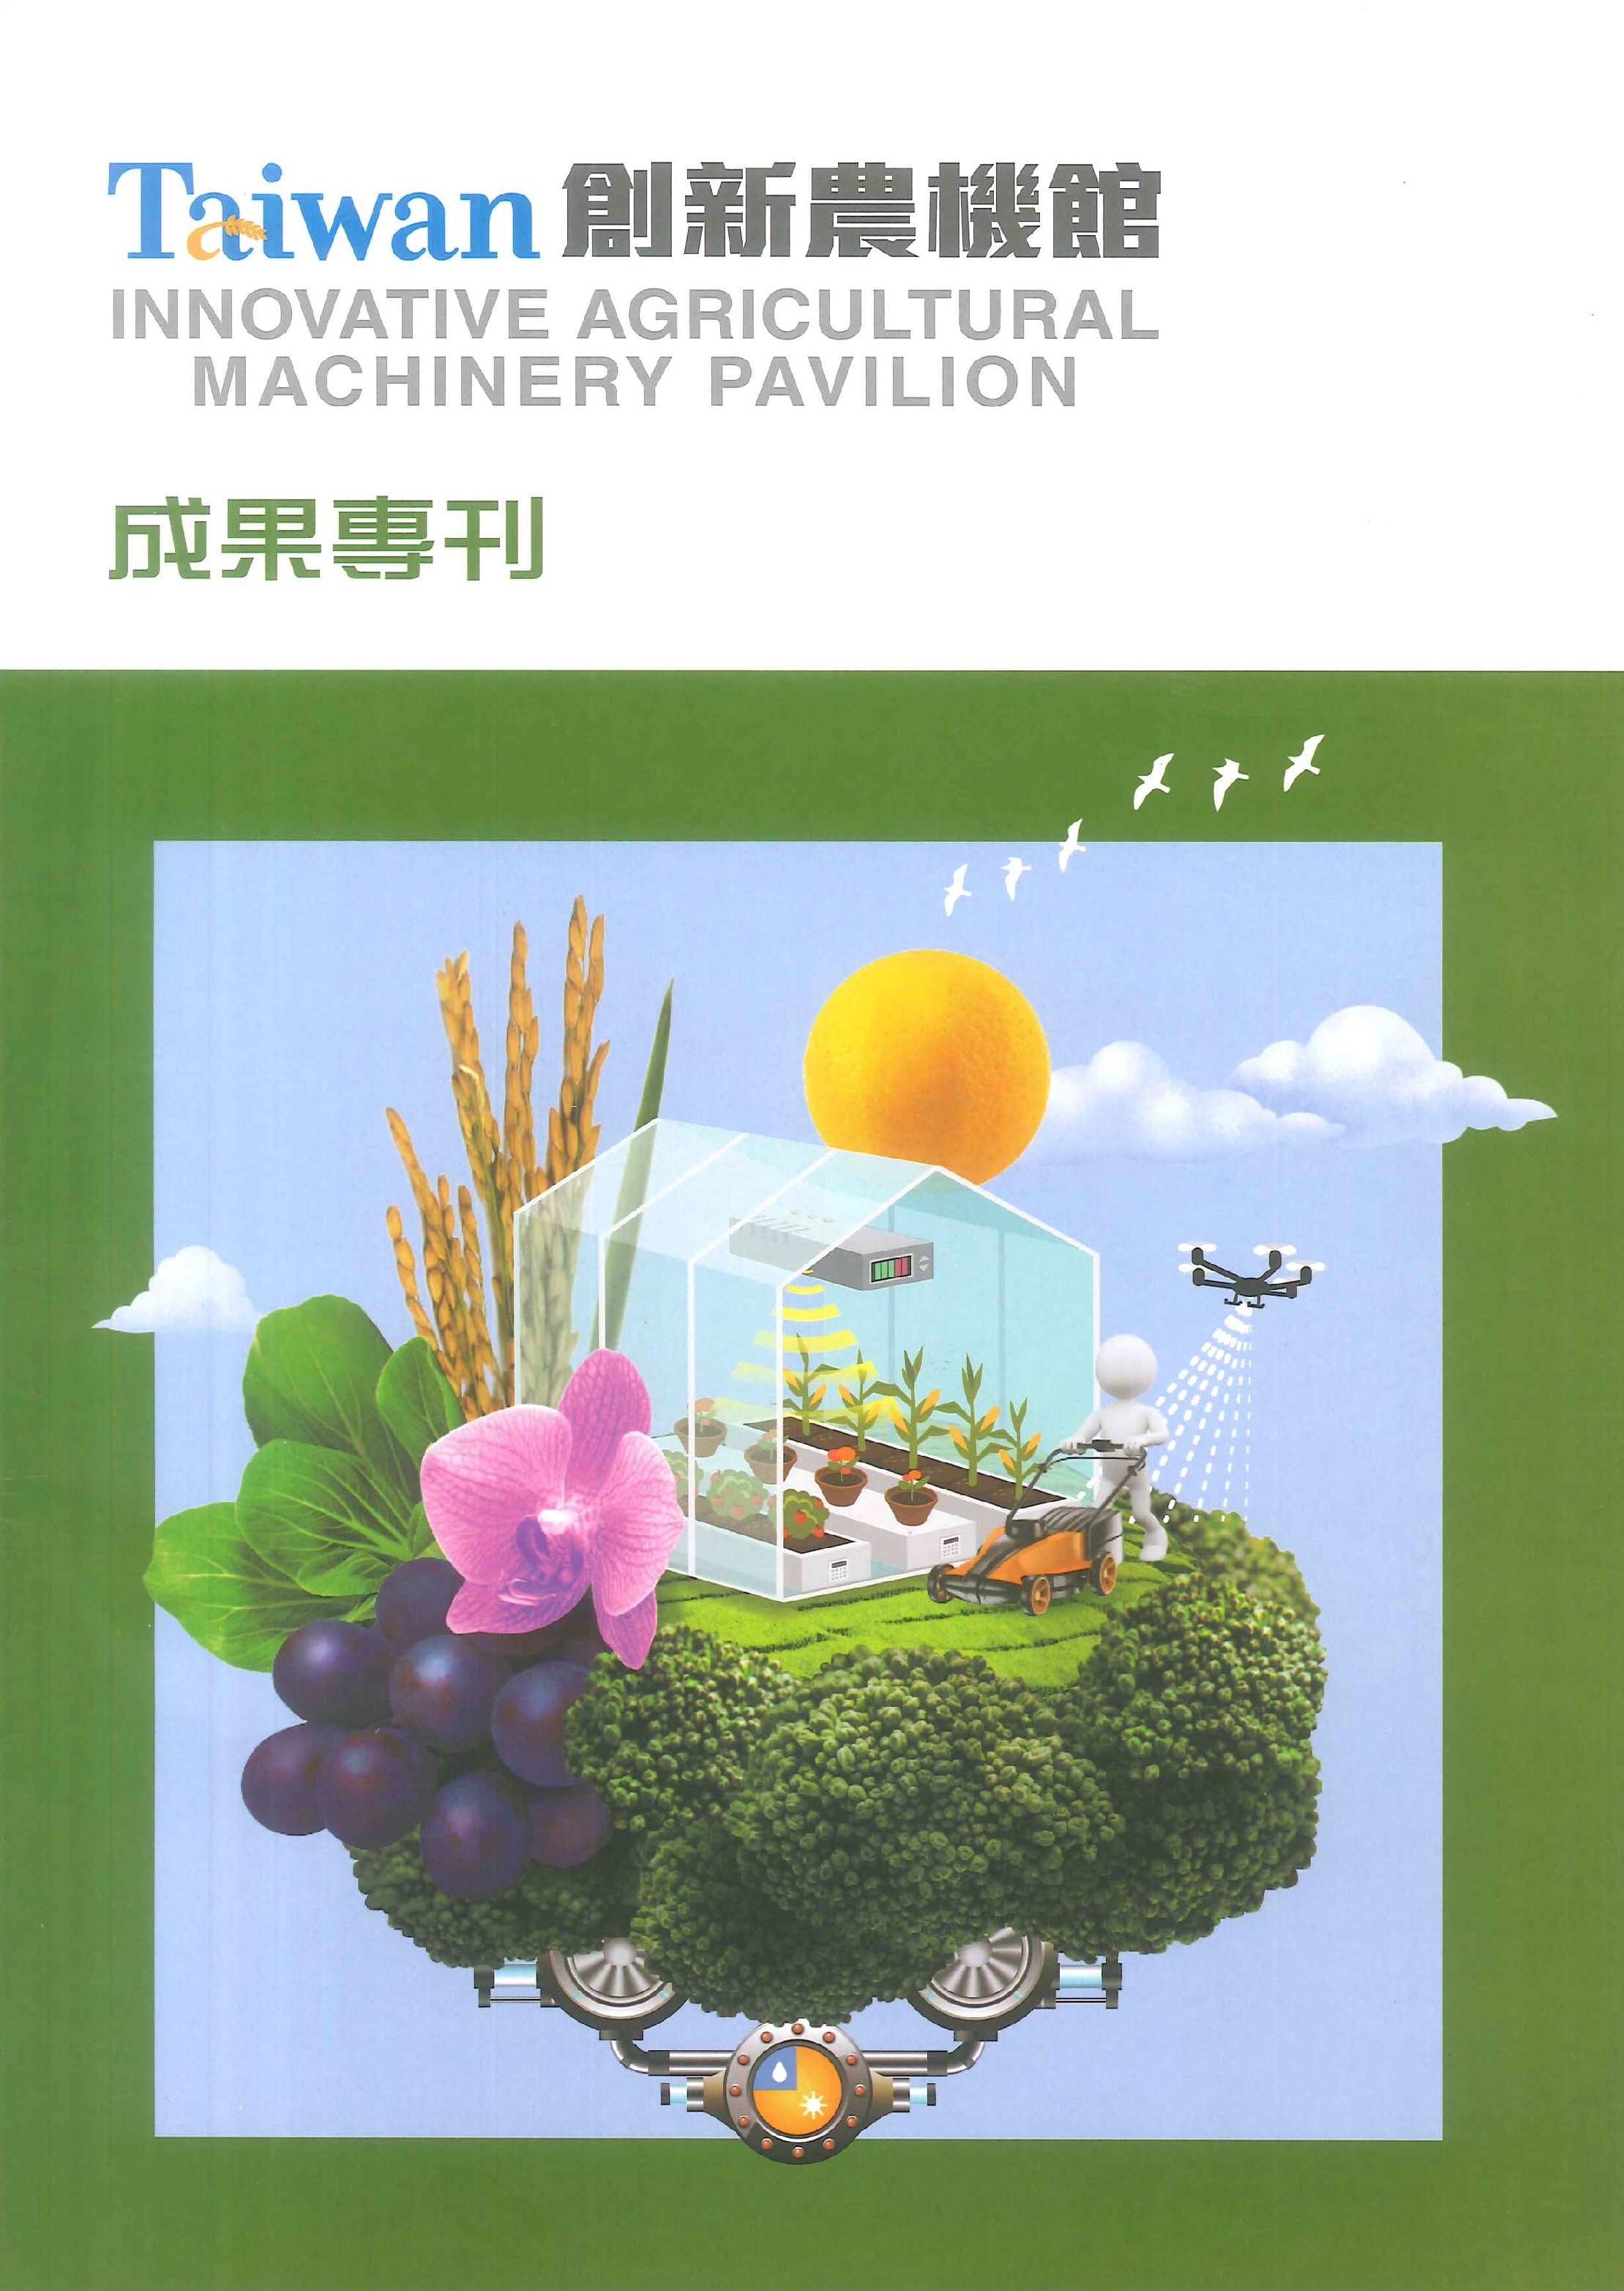 Taiwan創新農機館成果專刊=Innovative agricultural machinery pavilion